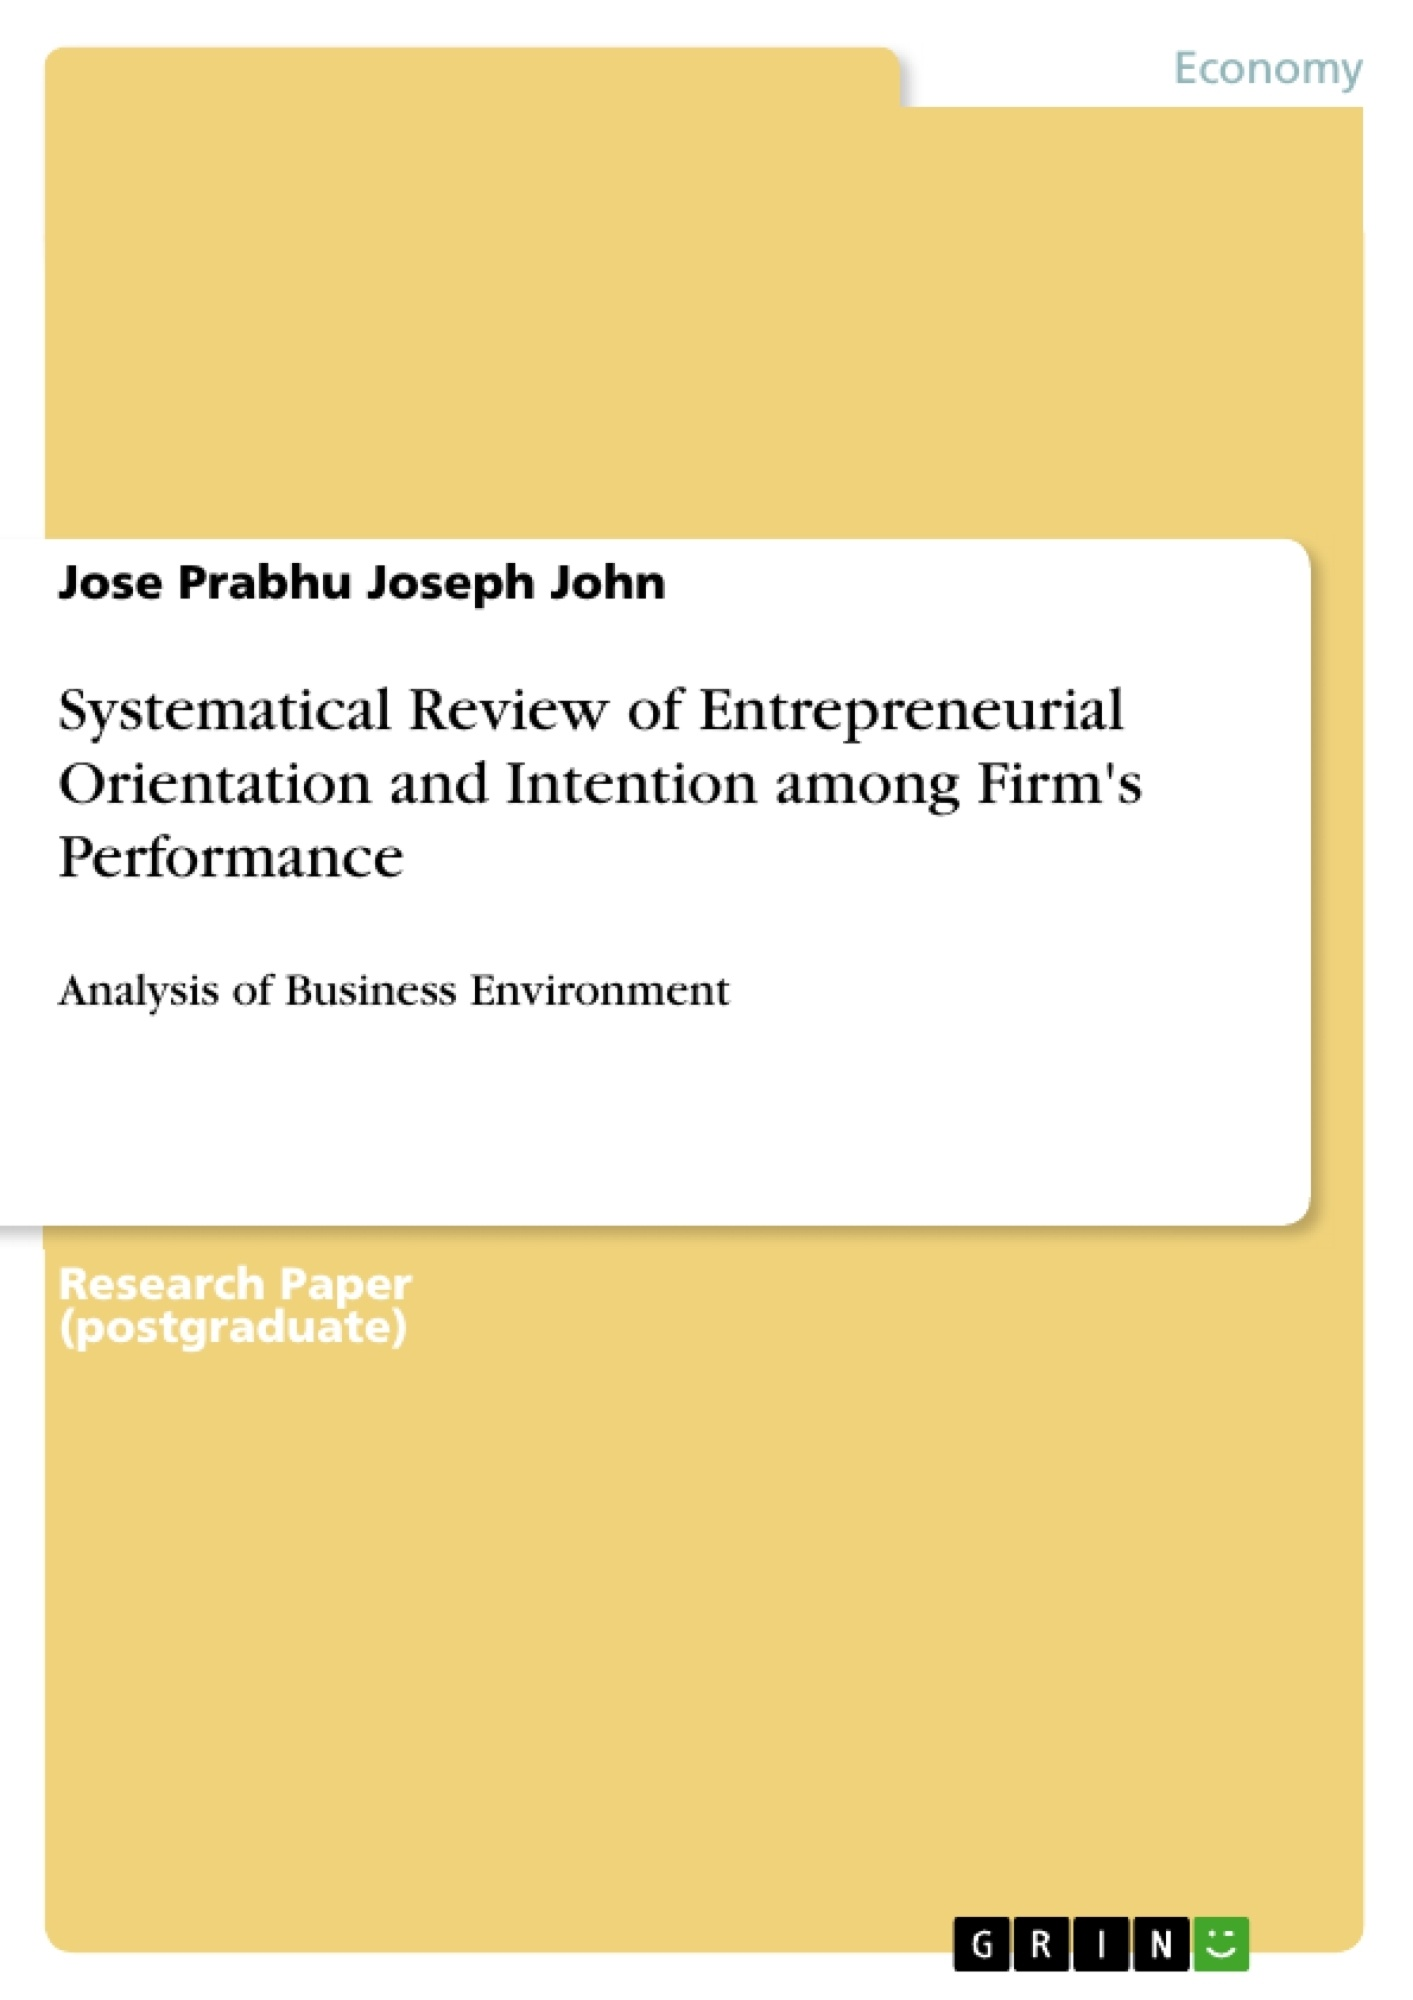 Title: Systematical Review of Entrepreneurial Orientation and Intention among Firm's Performance